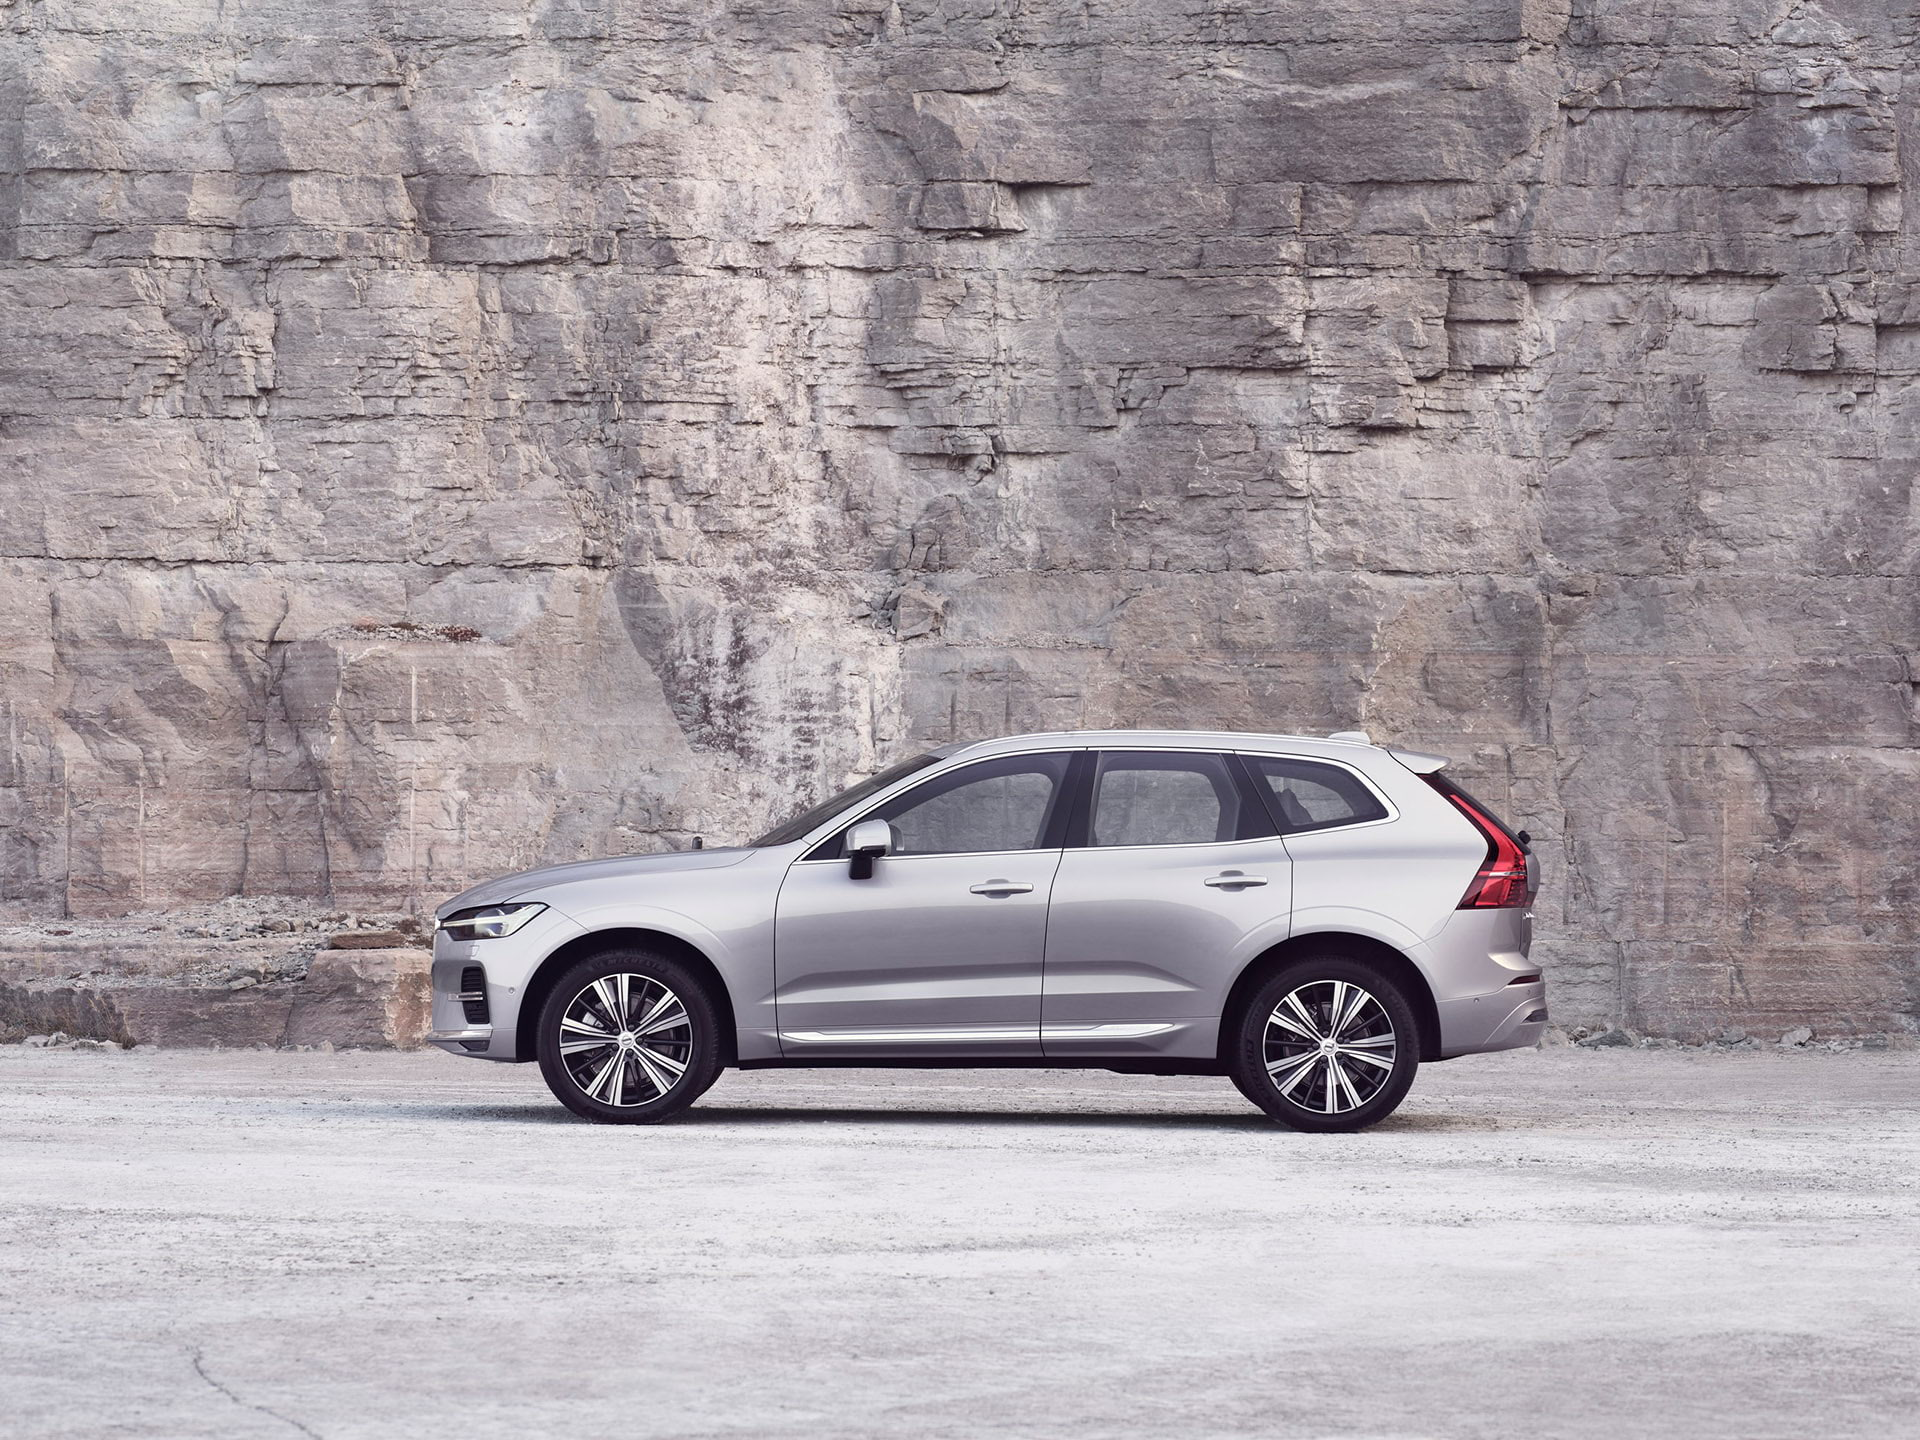 A silver Volvo XC60, charging in white surroundings.